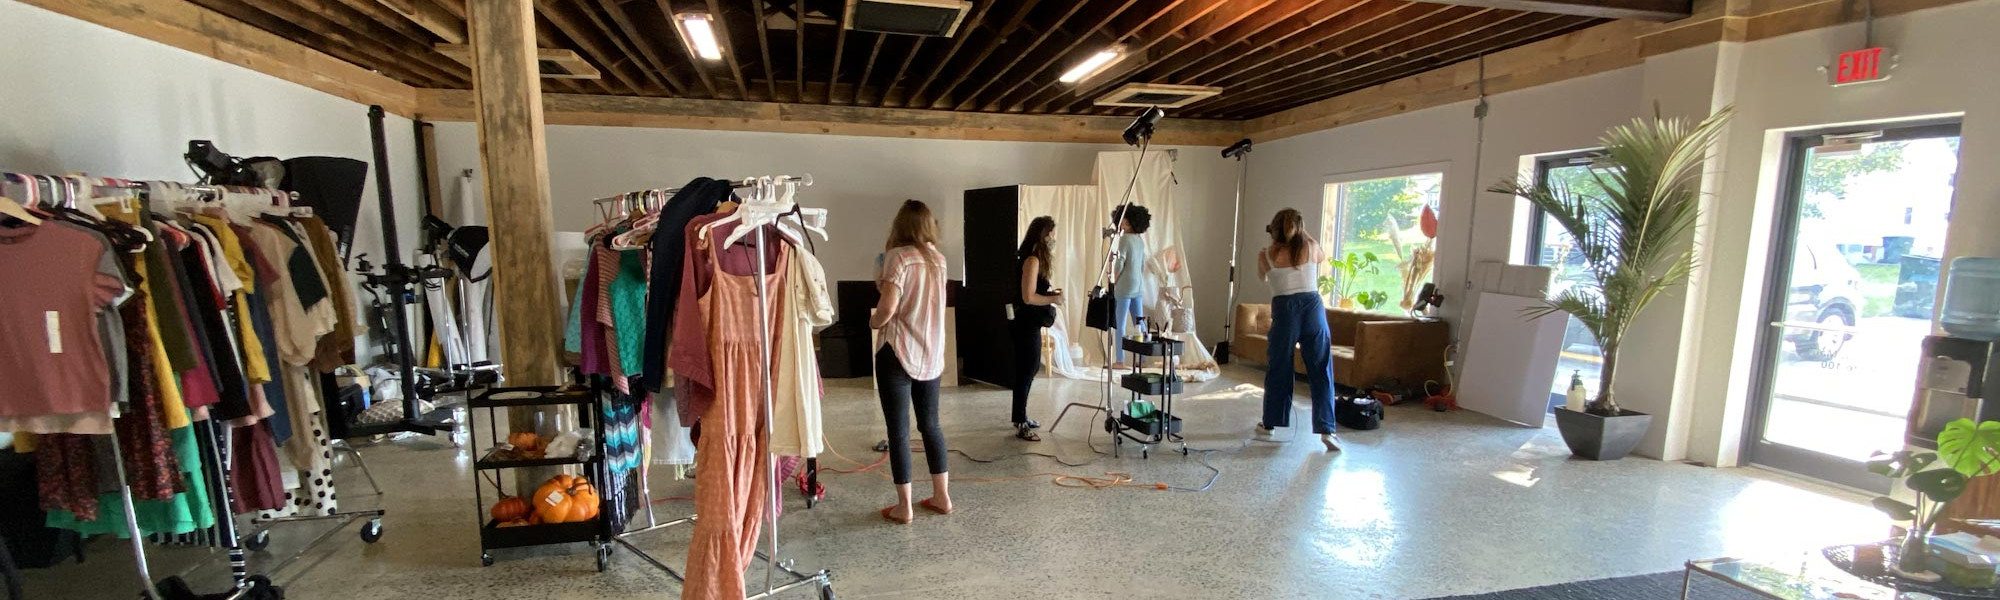 Salt Paper Studio production crew engaged in a fashion shoot in-studio with model, photographer and stylist